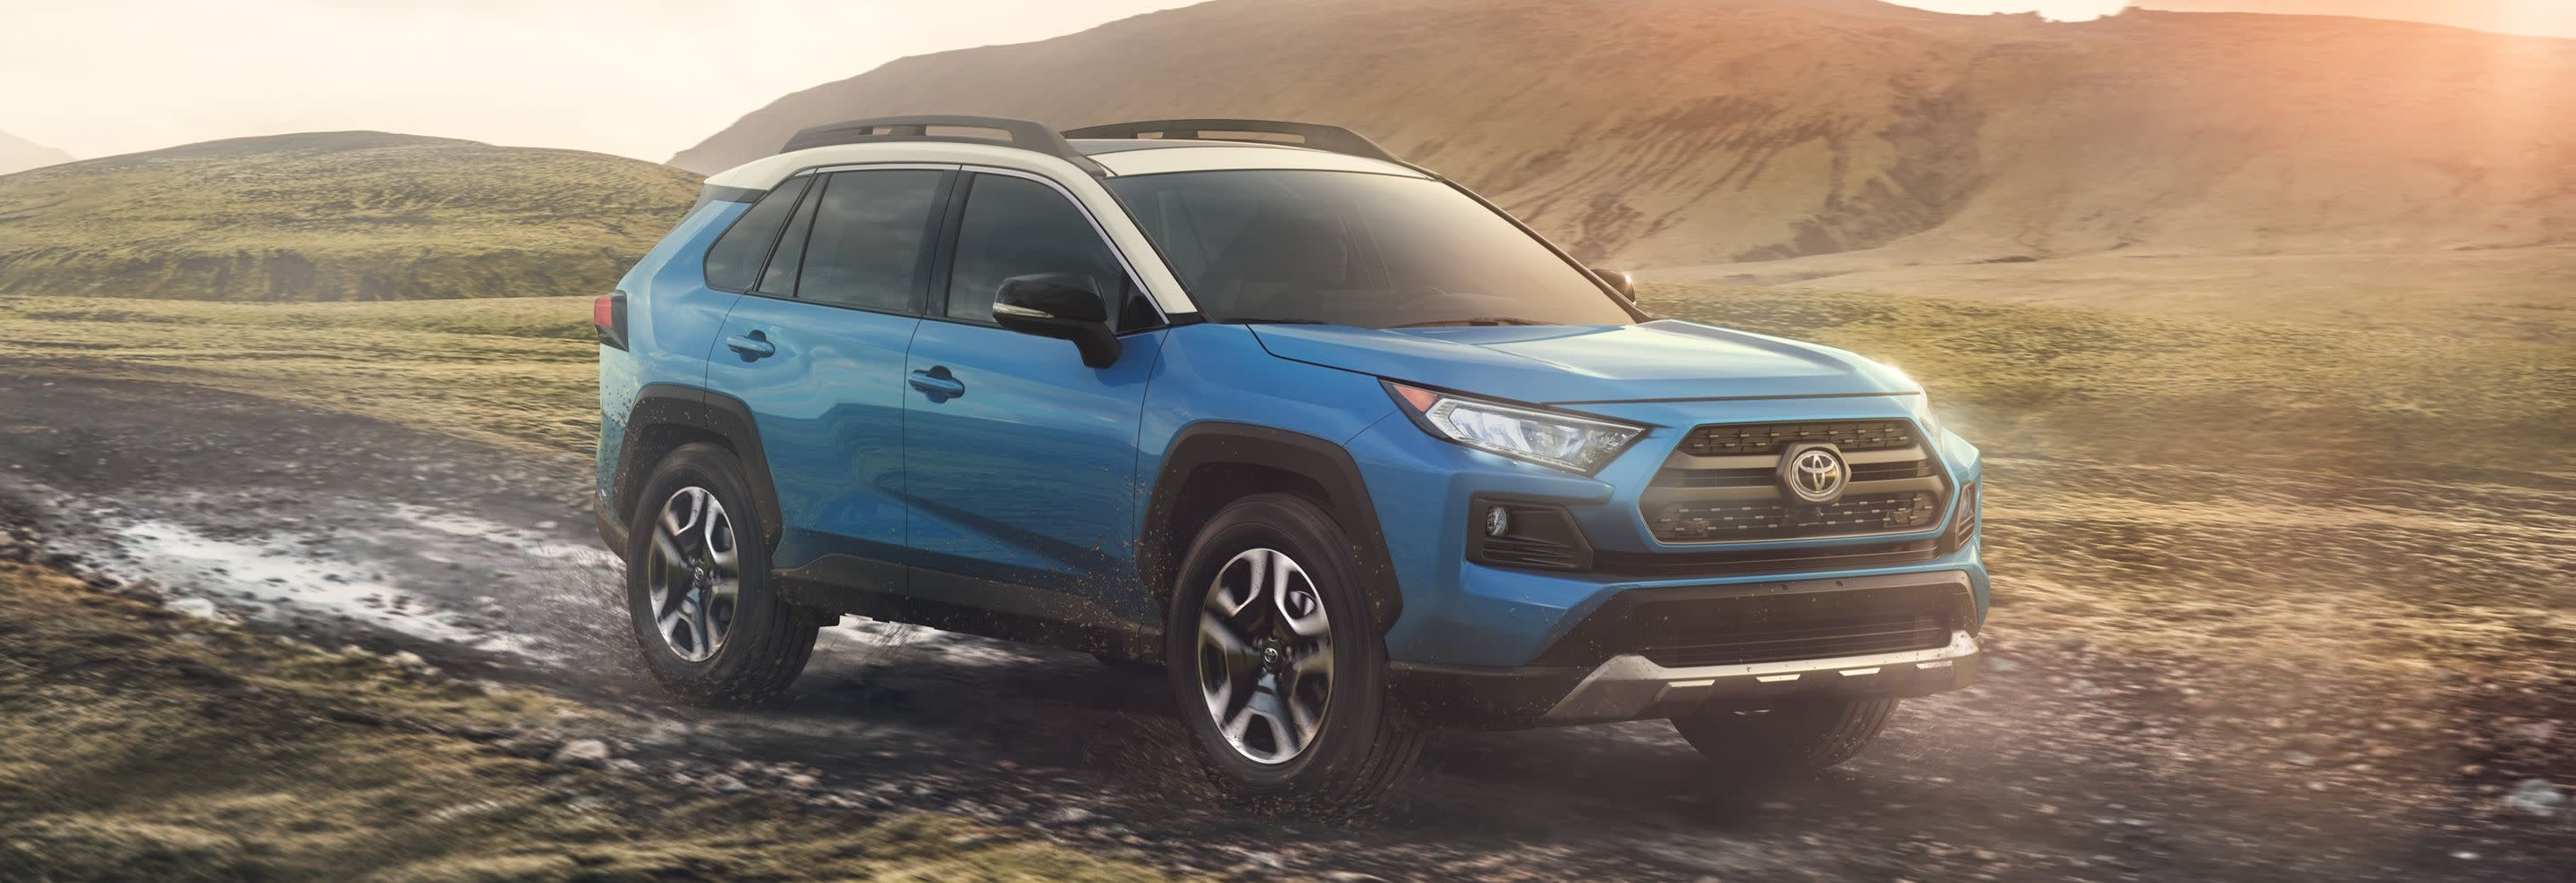 2020 Toyota RAV4 Lease in Rockford, IL